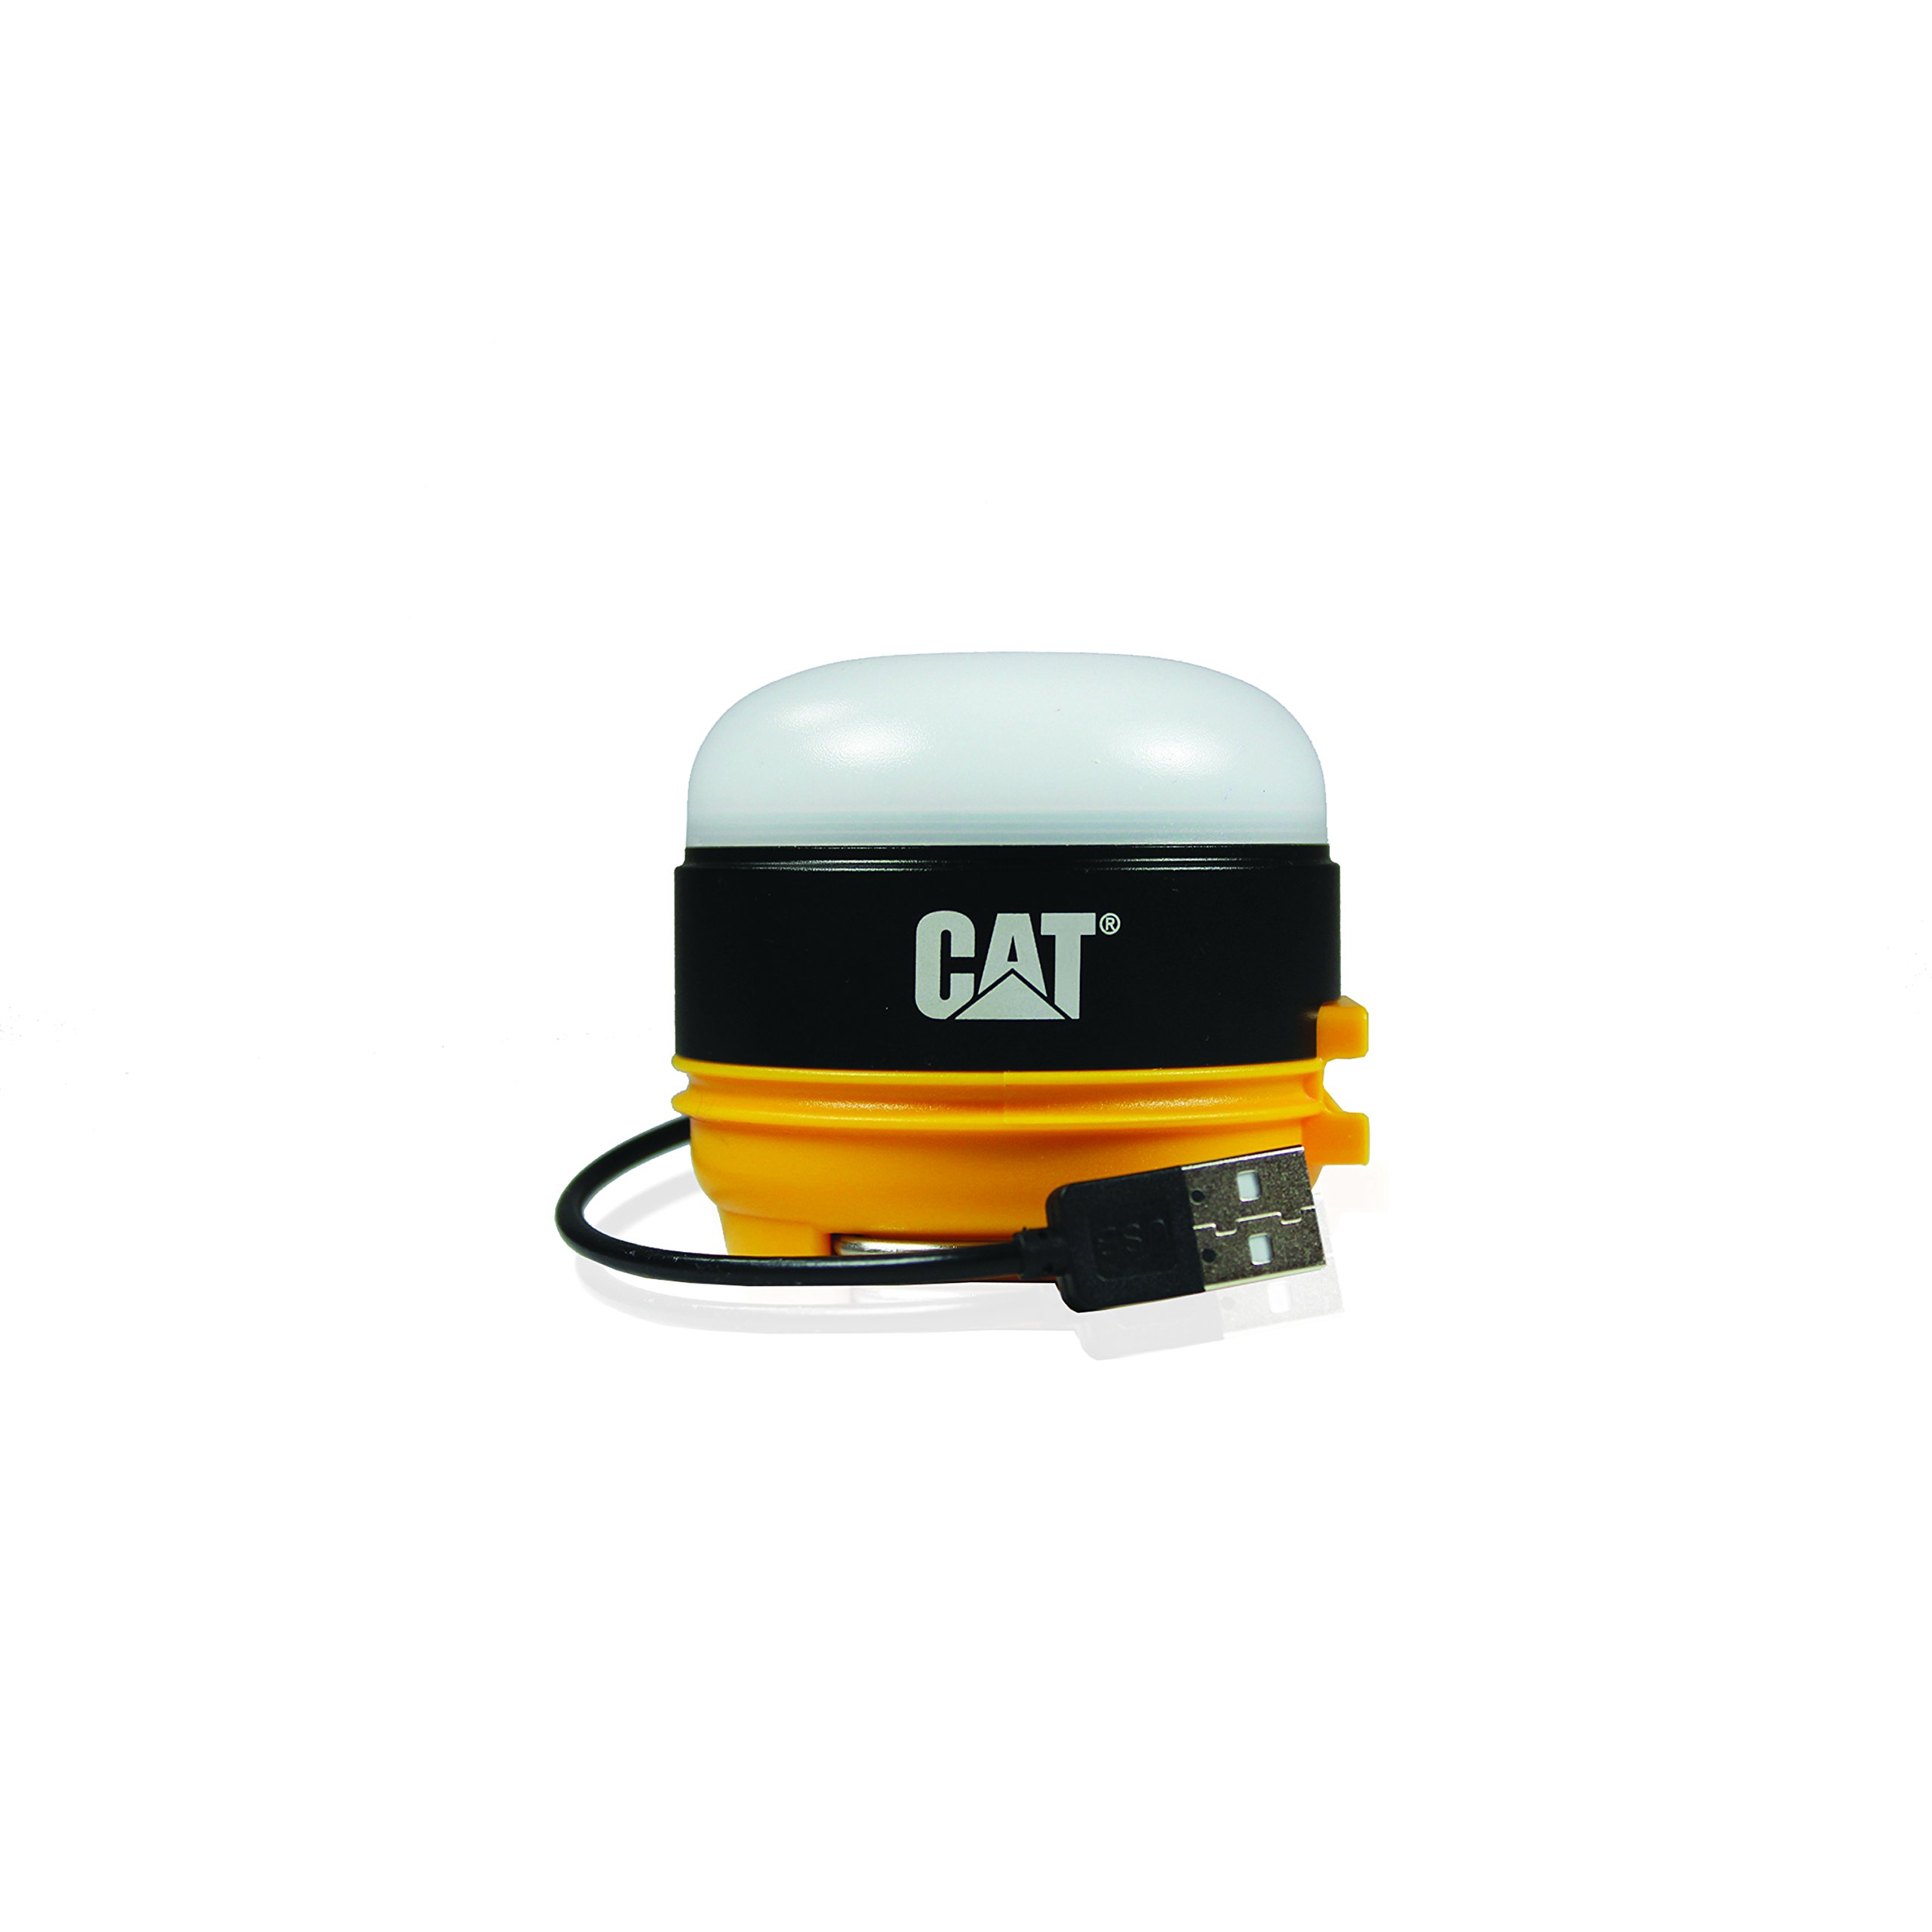 CAT CT6525 200 lm Rechargeable Micro Utility Work Light with Magnetic Base, Black/Yellow by Caterpillar